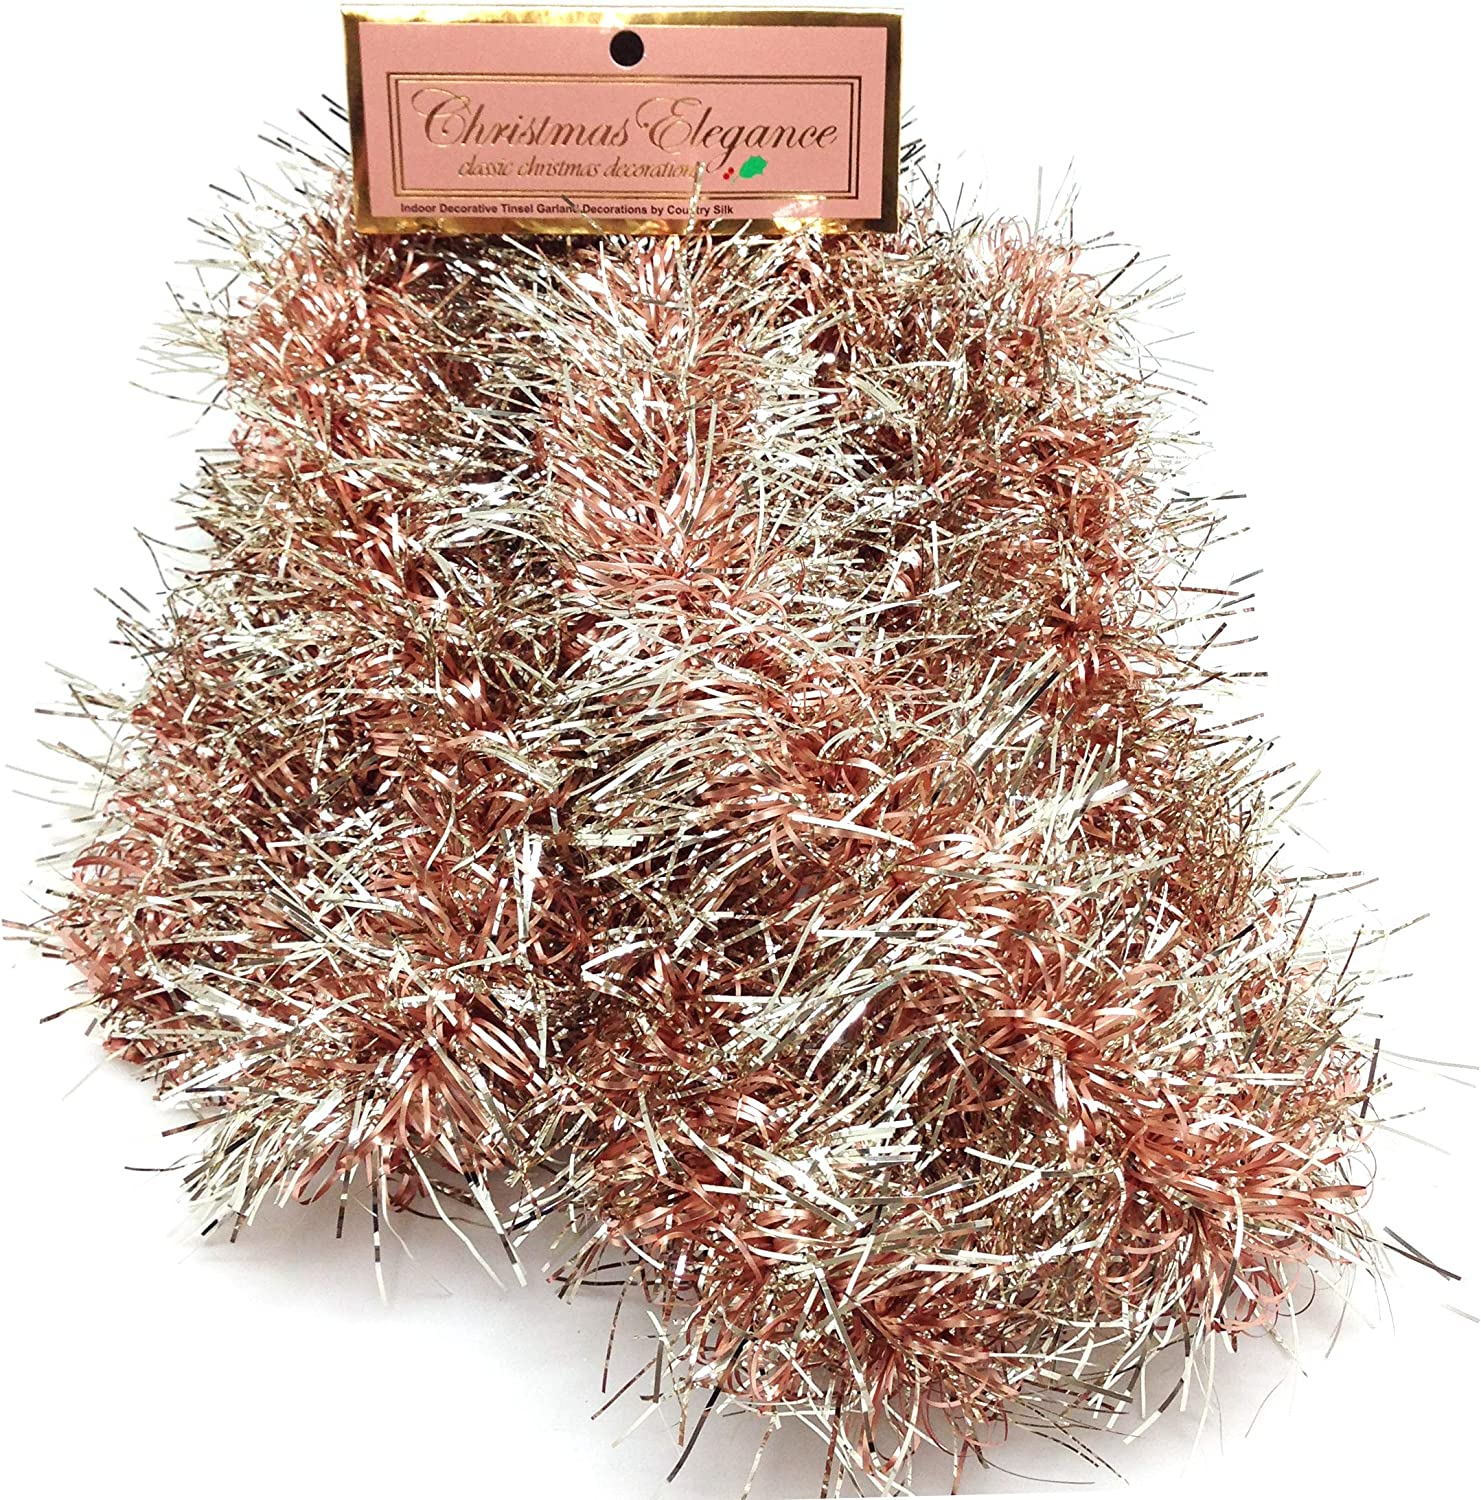 Christmas Elegance 90 Inch Thin Tinsel Center Loop Christmas Garland, Rose Gold/Champagne